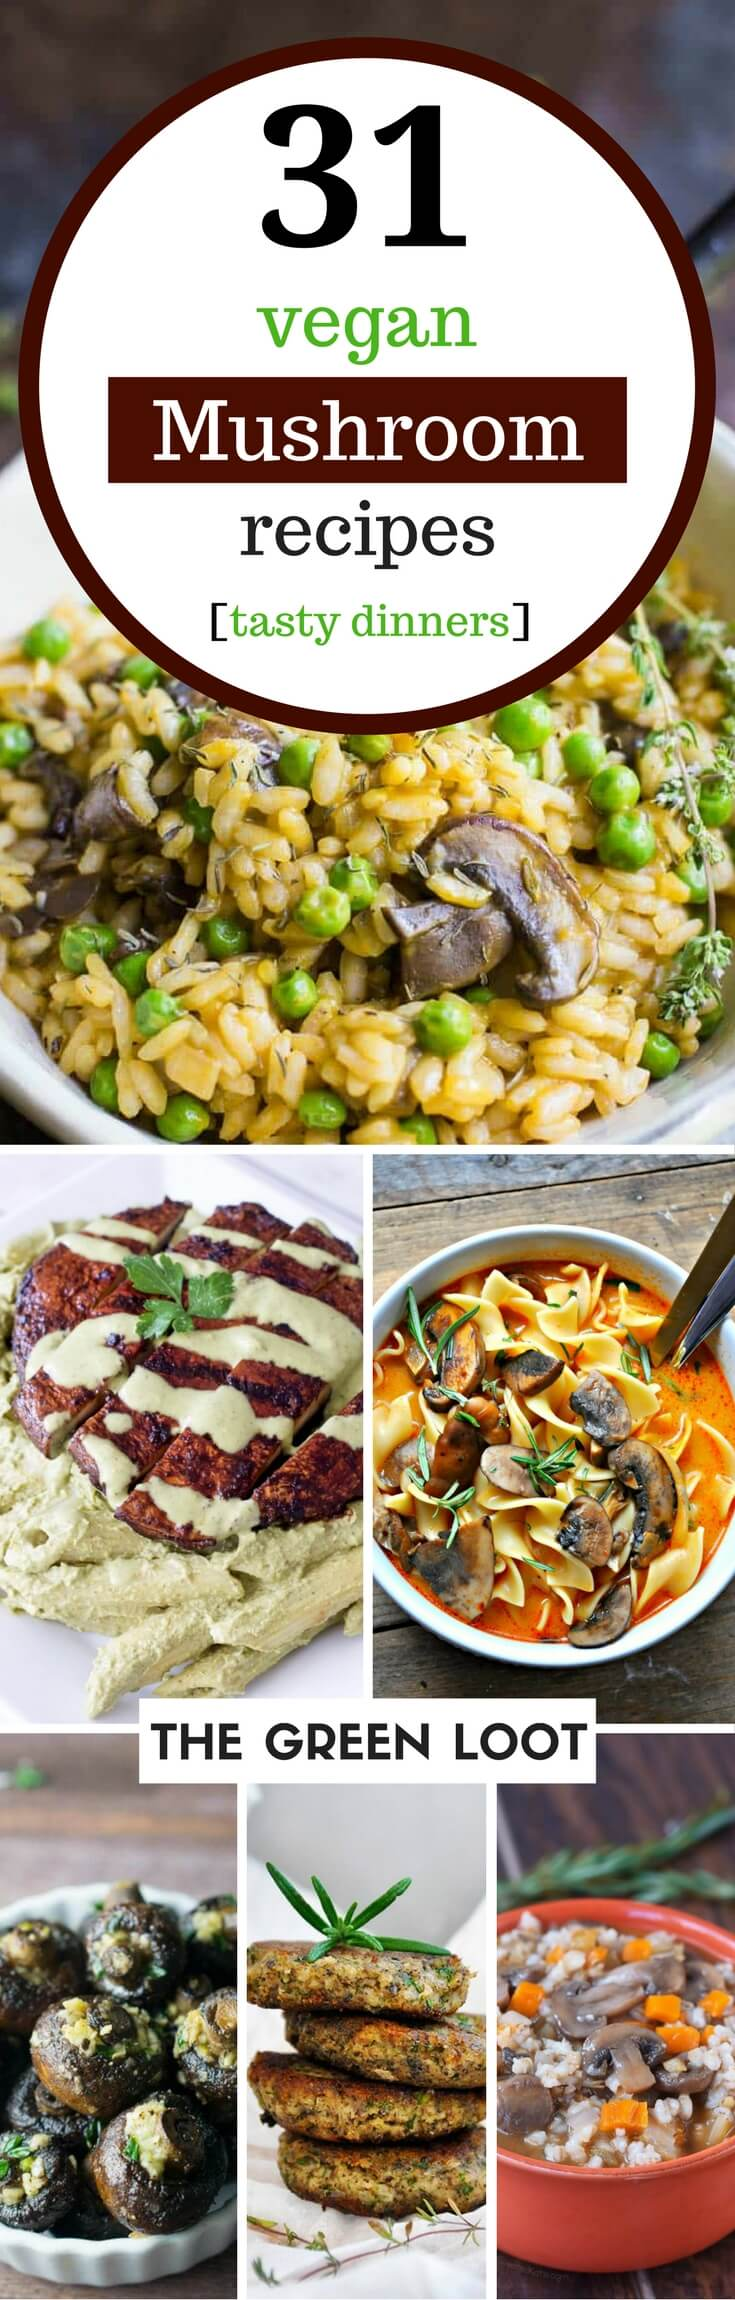 Vegan mushroom recipes make the best healthy and easy dinners. Make these soup, risotto, stuffed, gravy, pasta, portobello, shiitake, and roasted meals tonight. They are plant-based, dairy-free and super tasty! | The Green Loot #vegan #mushroom